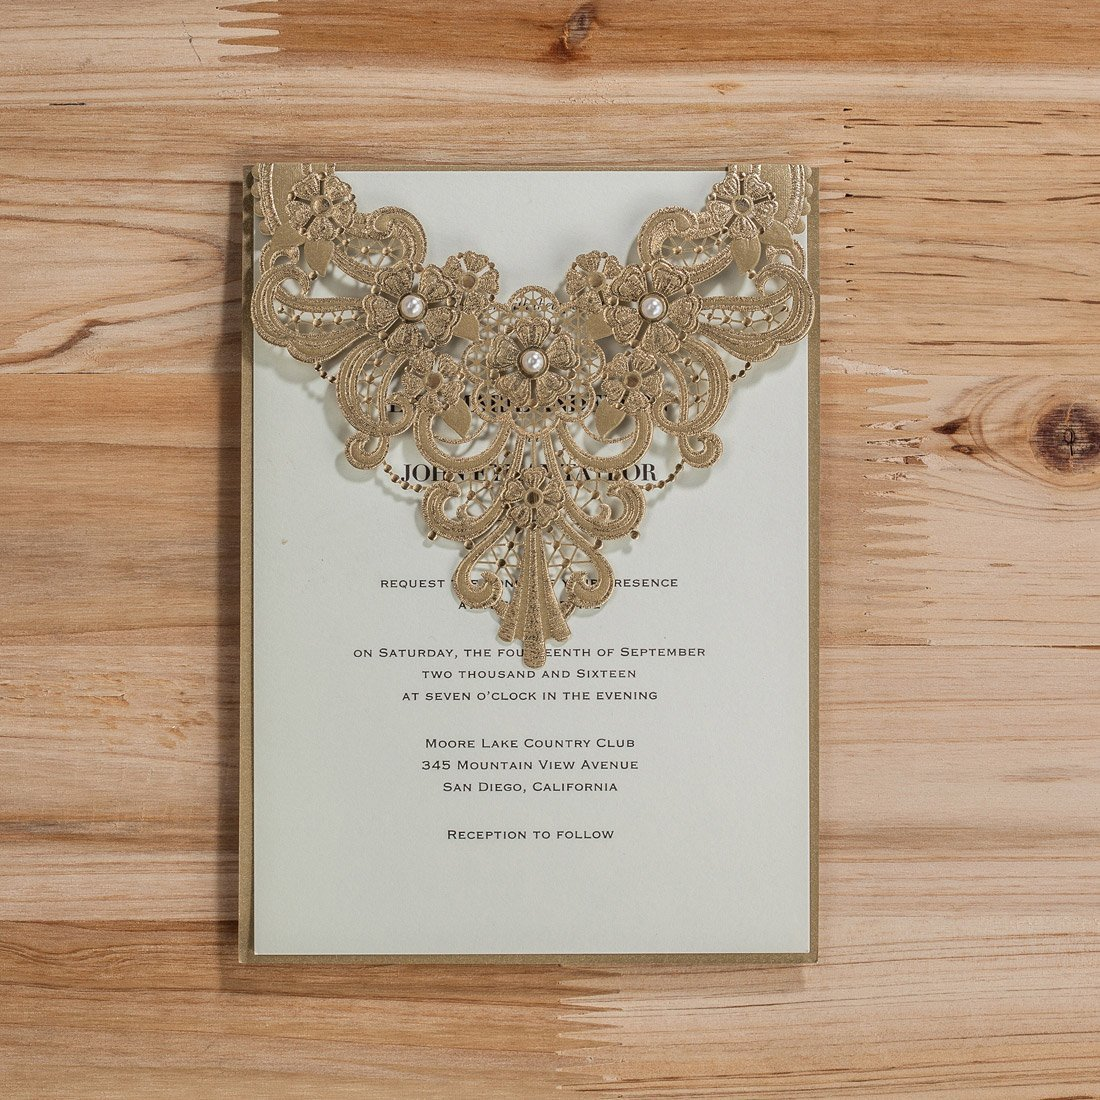 wishmade 50x elegant gold laser cut wedding invitation cards kits with pearl lace sleeve flowers cardstock